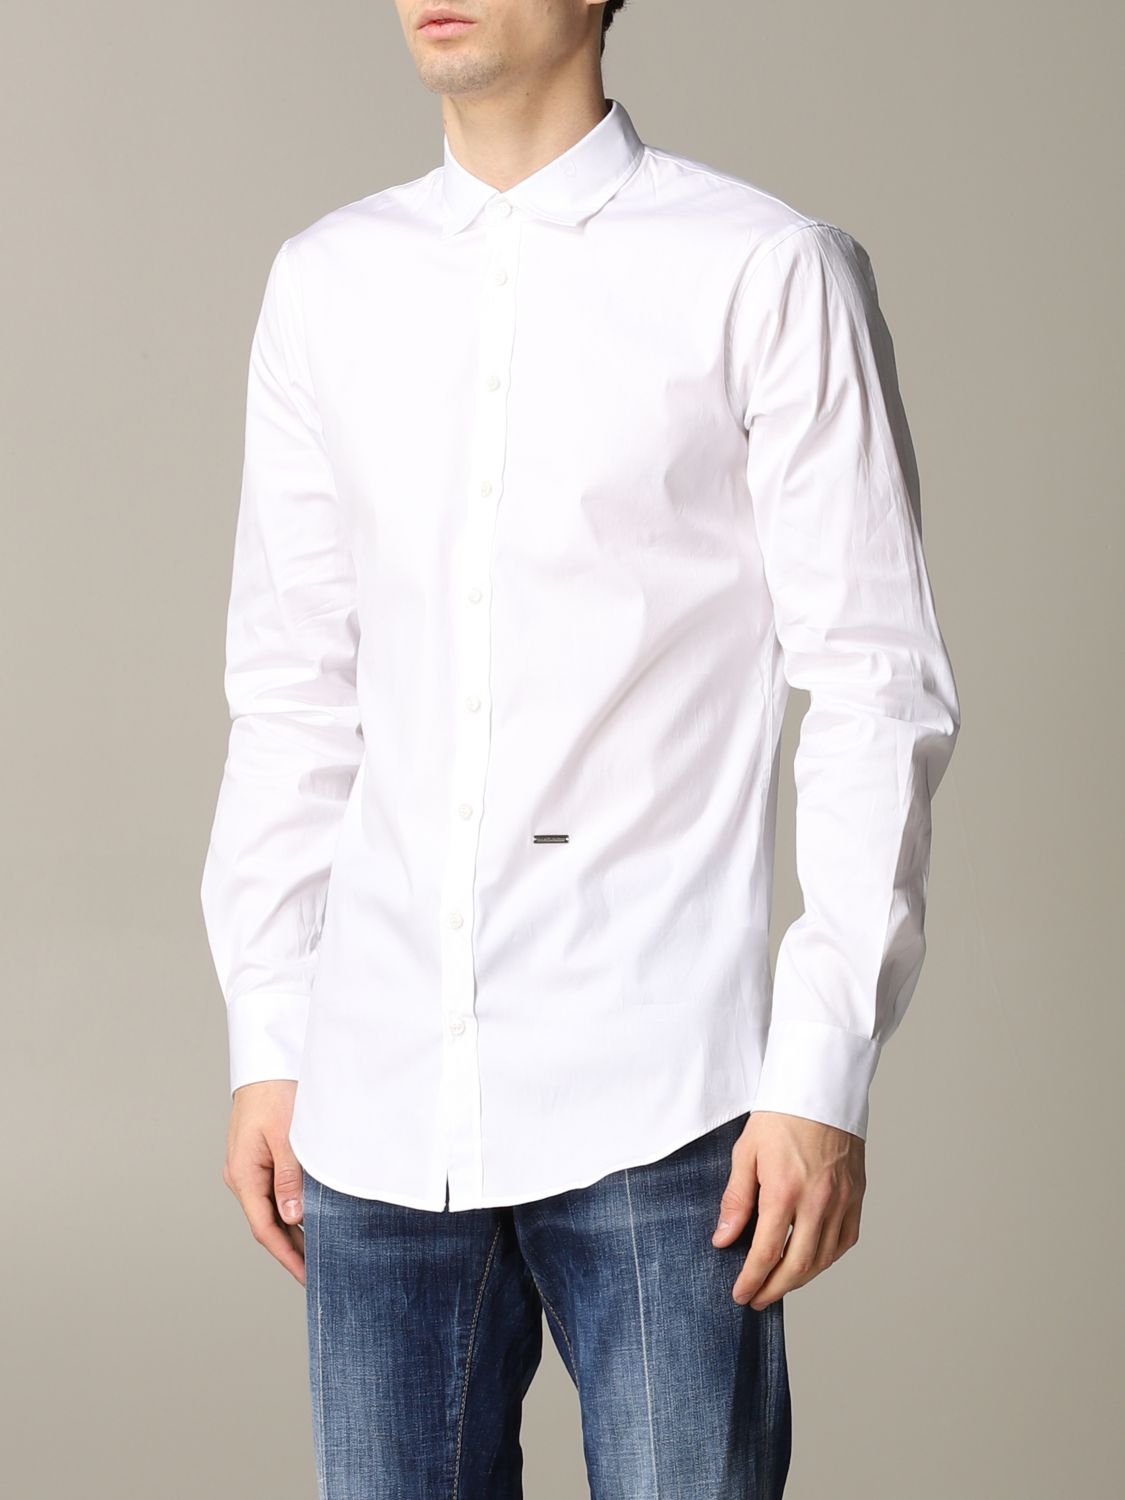 Shirt Dsquared2: Dsquared2 shirt with logo white 4